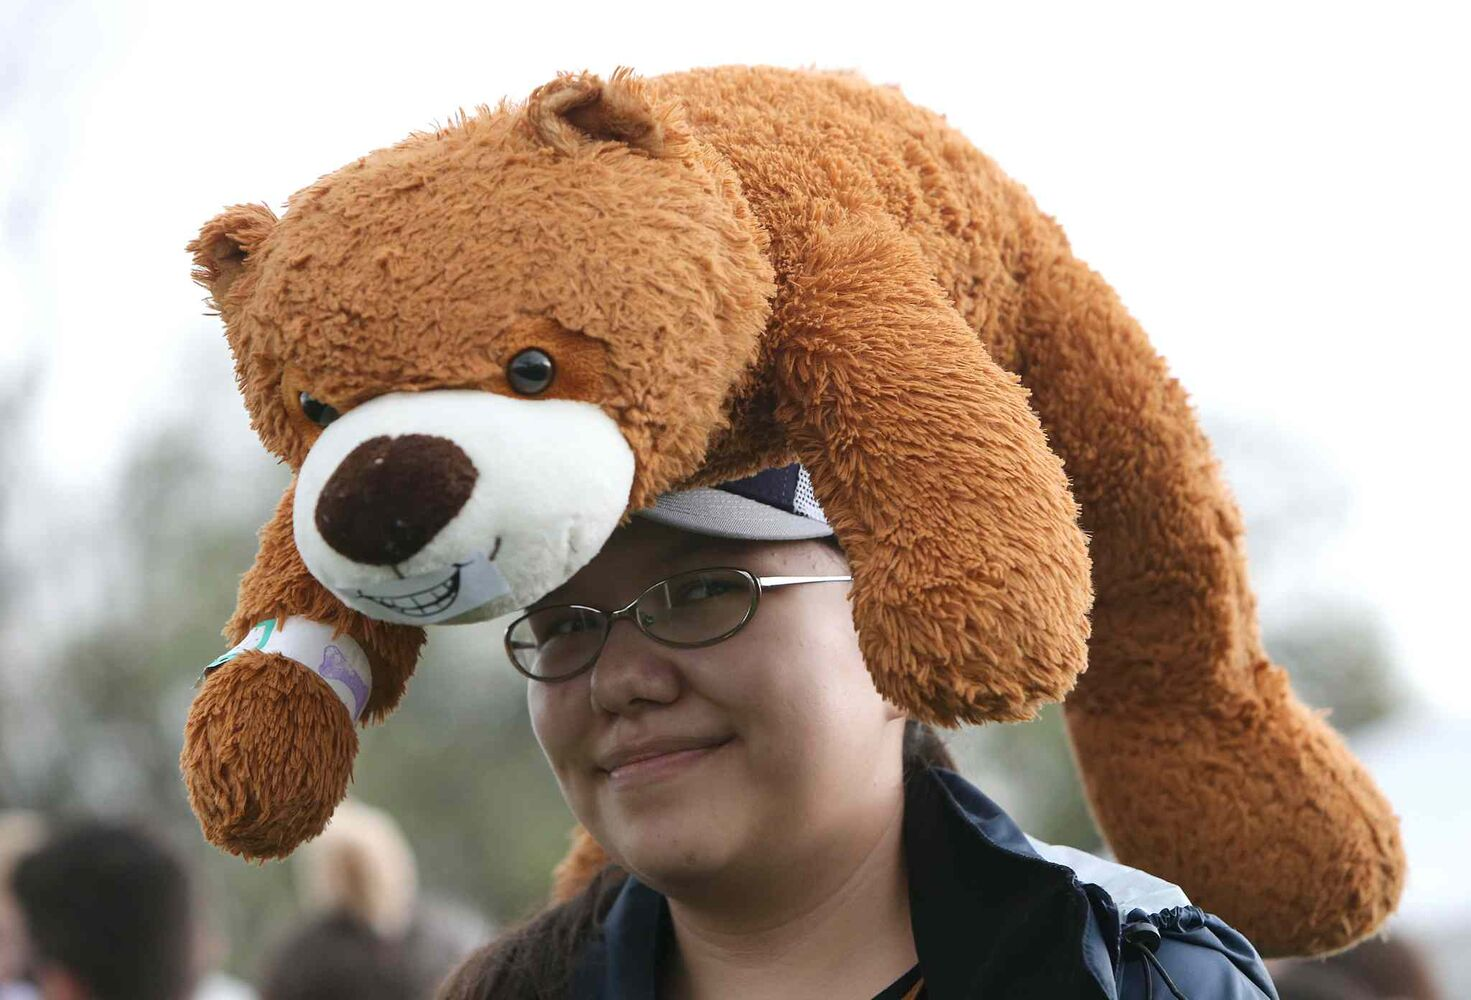 Ruby Thom-Duck, 13, carries her bear on her head in Assiniboine Park Sunday. (Jason Halstead / Winnipeg Free Press)